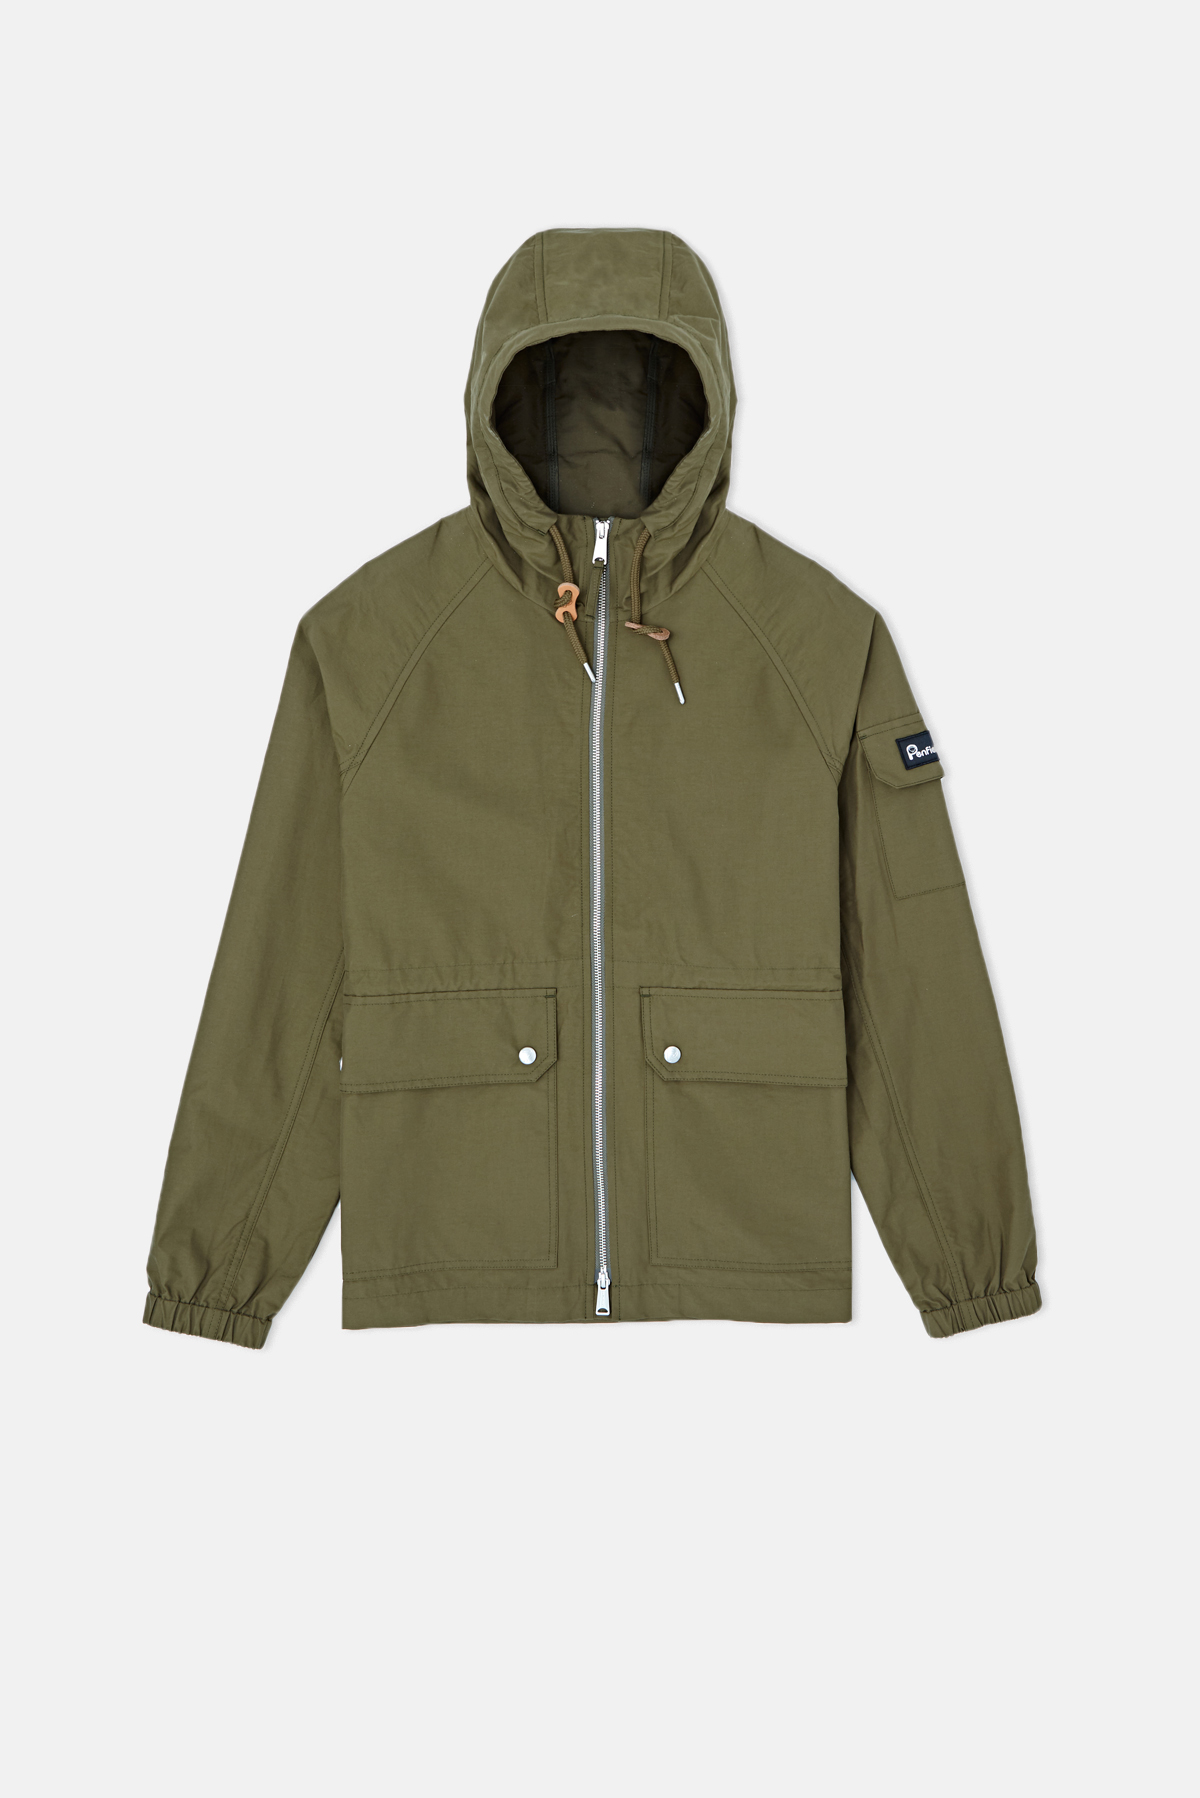 Priory Halcott Jacke Available Penfield From Y76gbfy